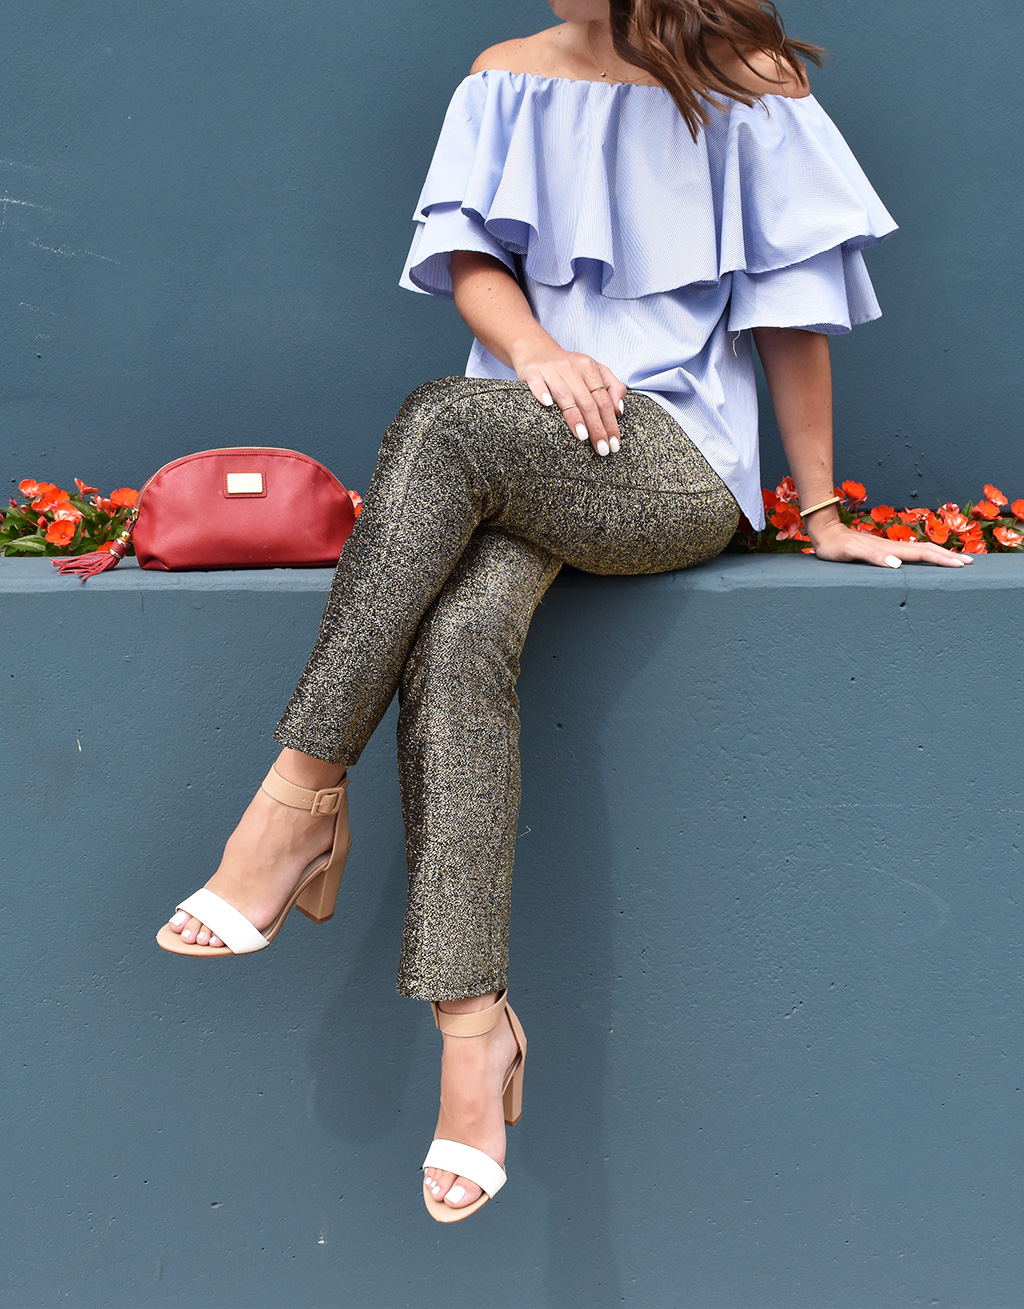 For the Red, White, and Blue | SheIn Off-the-Shoulder Top, H&M Gold Sequined Pants, Zara Chunky Heeled Sandals, Morelle & Co Mirriam Saffiano Leather Cosmetic Bag, Jennifer Fisher Bracelet